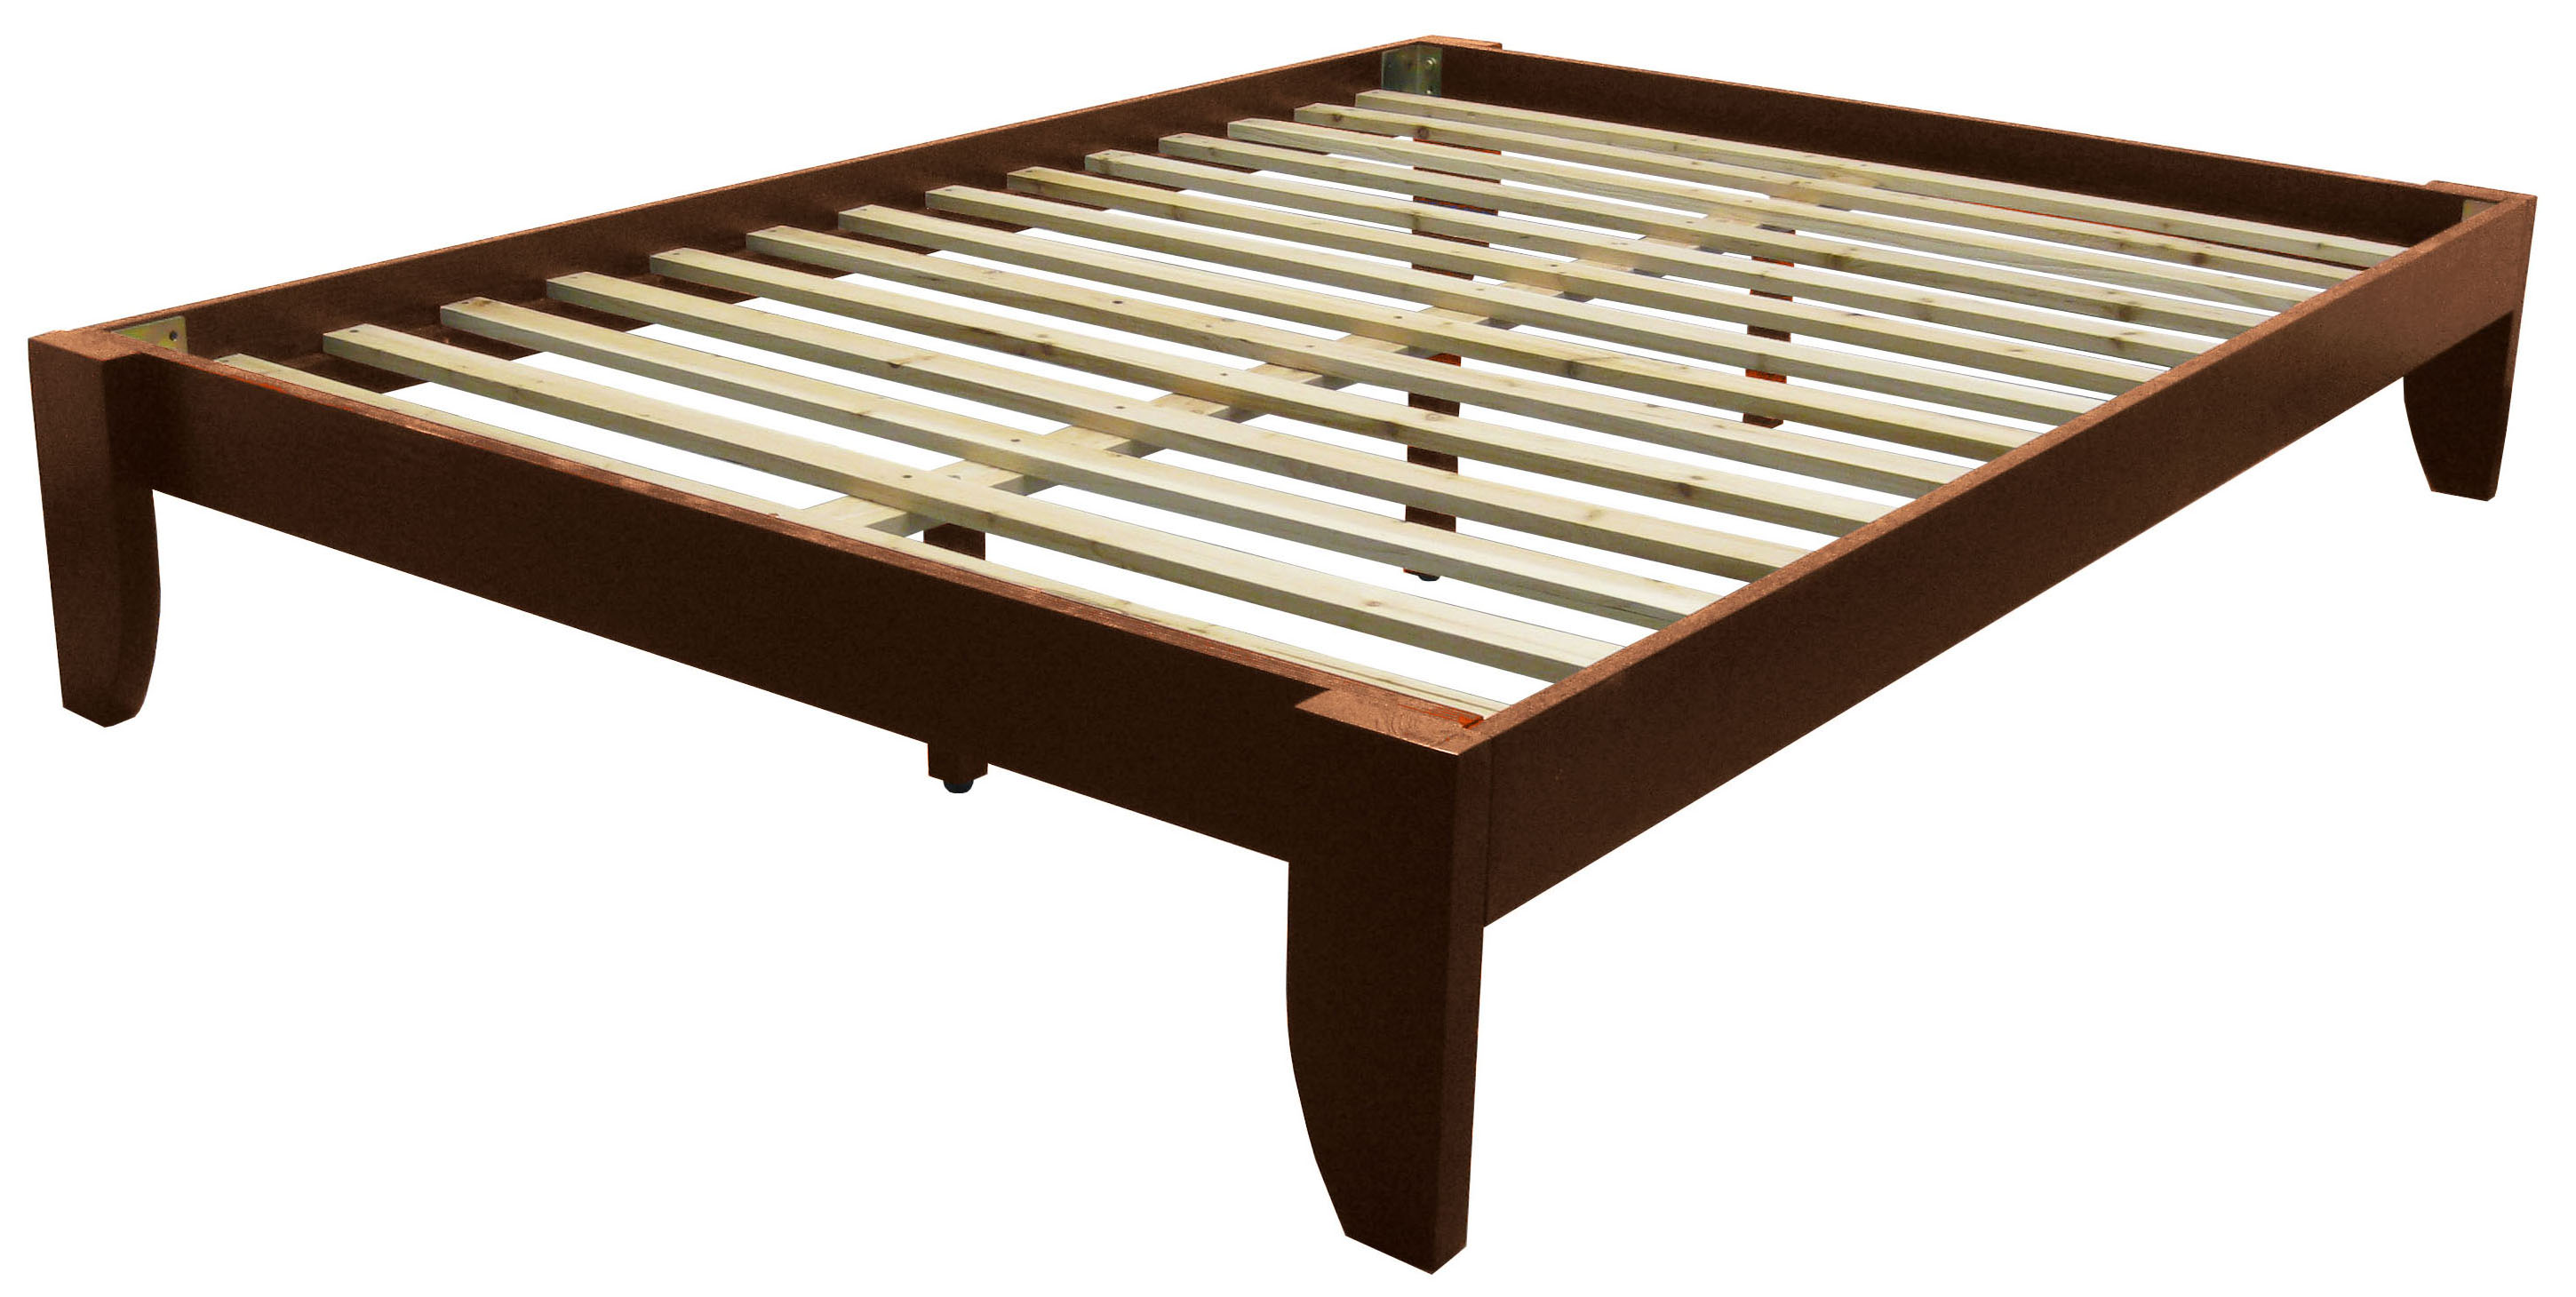 Everlast Solid Wood Bamboo Platform Bed Frame Queen Size Walnut Finish Walmart Com